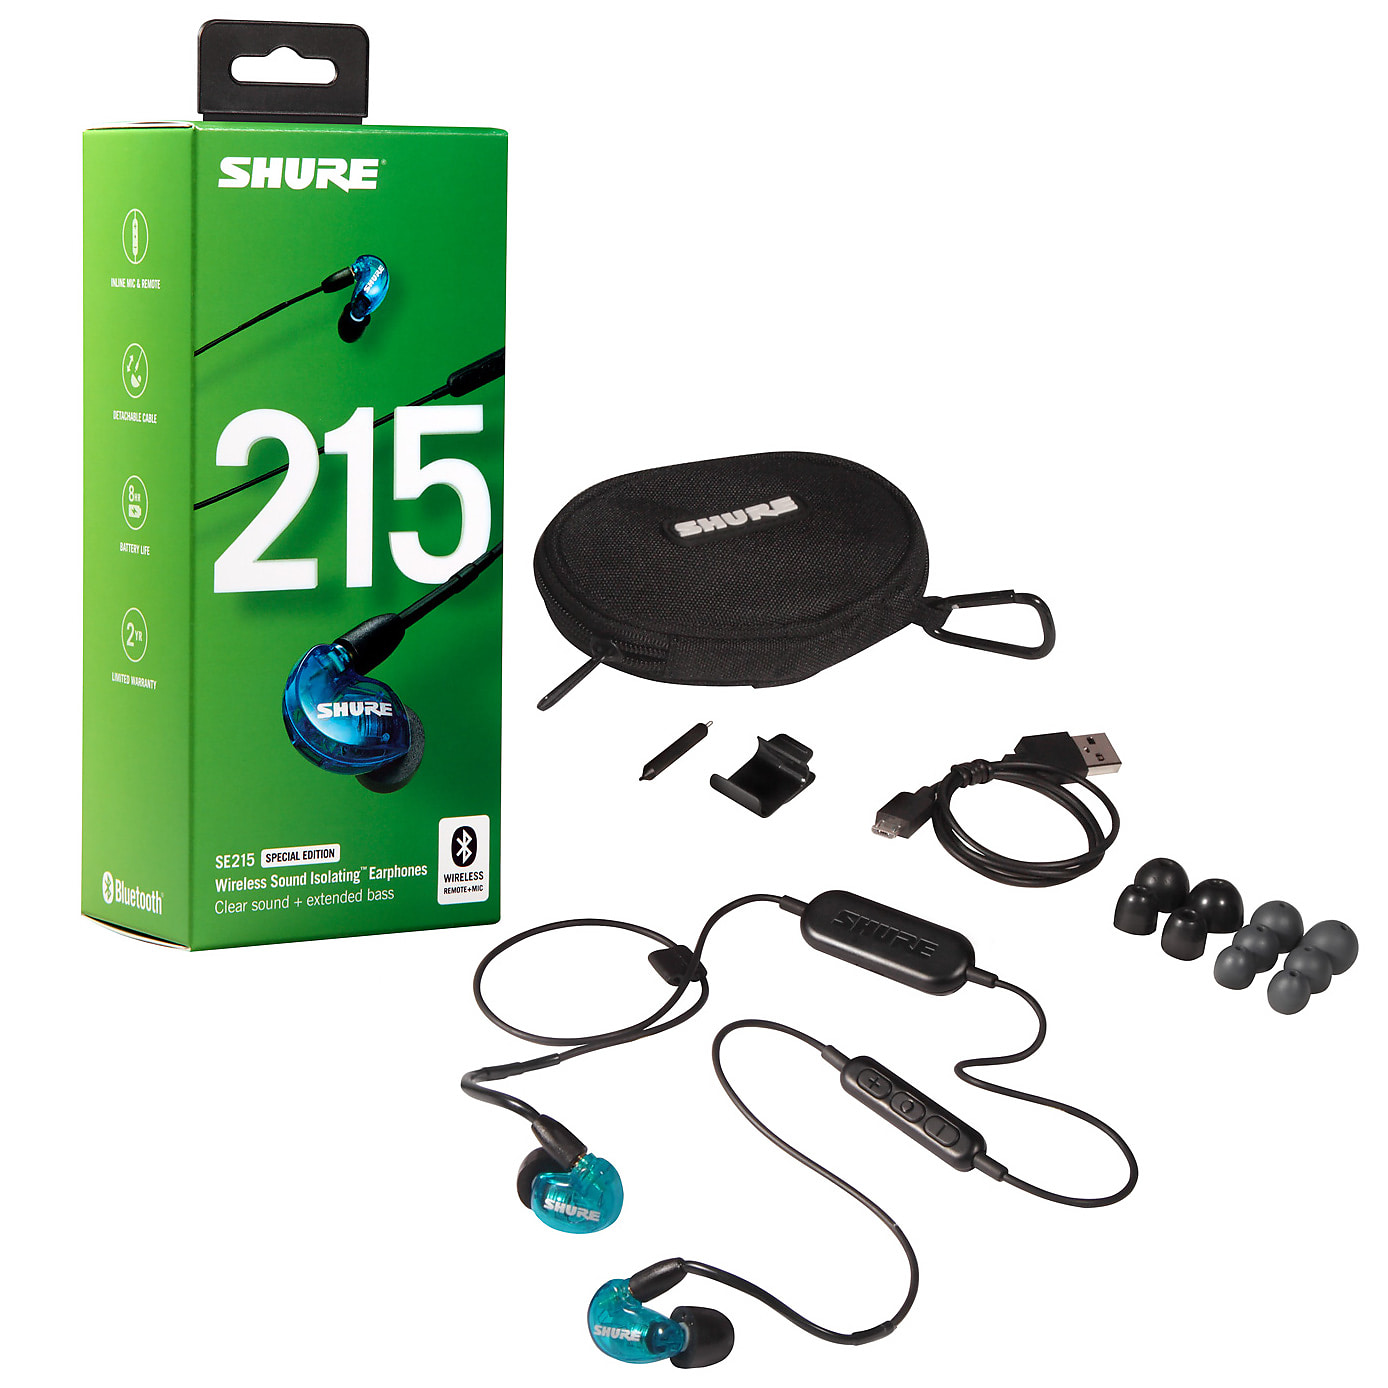 e355cee1c63 Shure SE215-BT1 Blue Special Edition Wireless Sound Isolating Earphones  with Bluetooth Cable